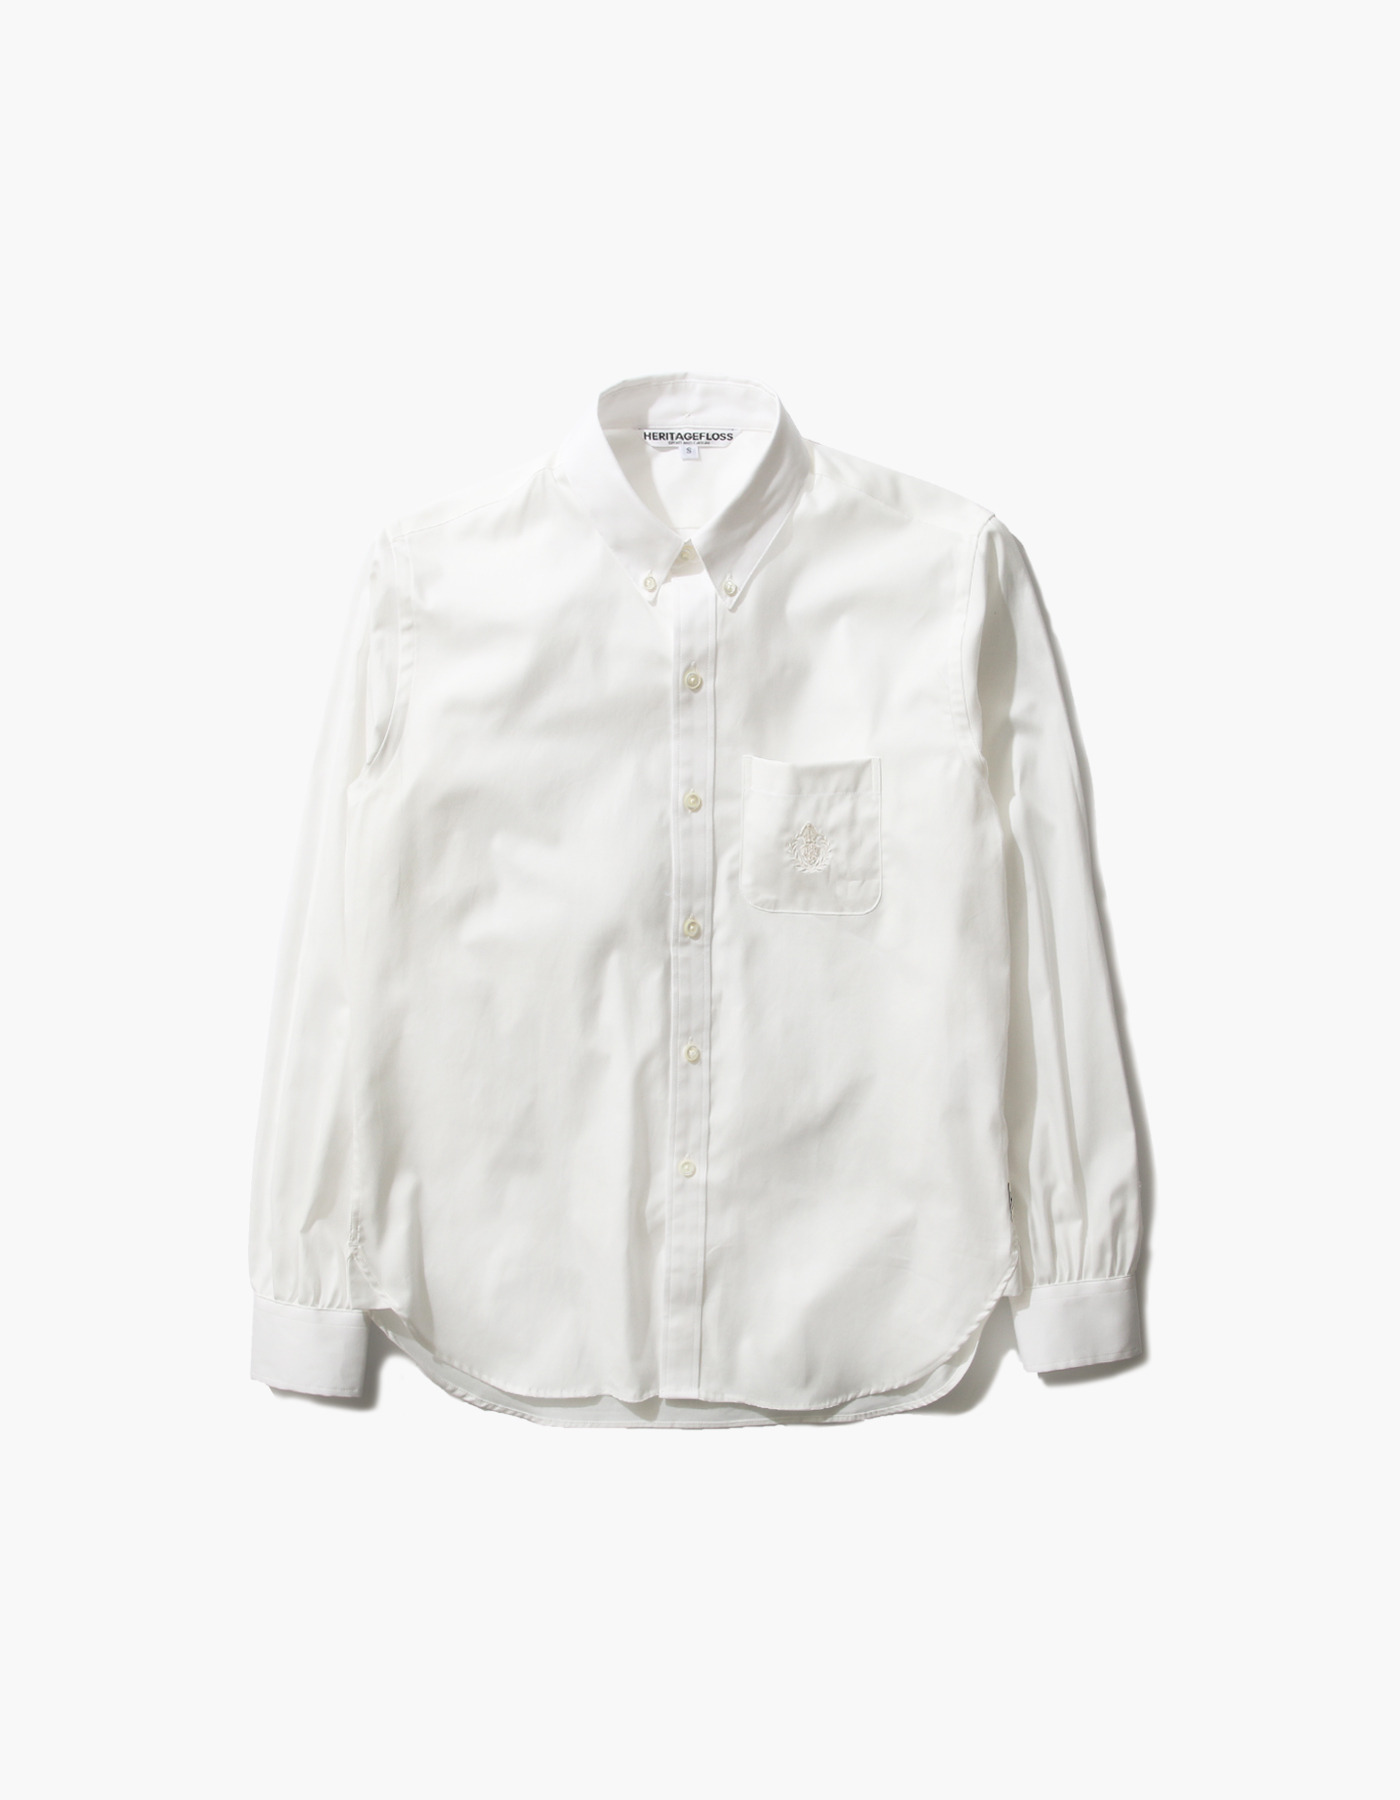 HFC COMBED OXFORD SHIRTS / WHITE